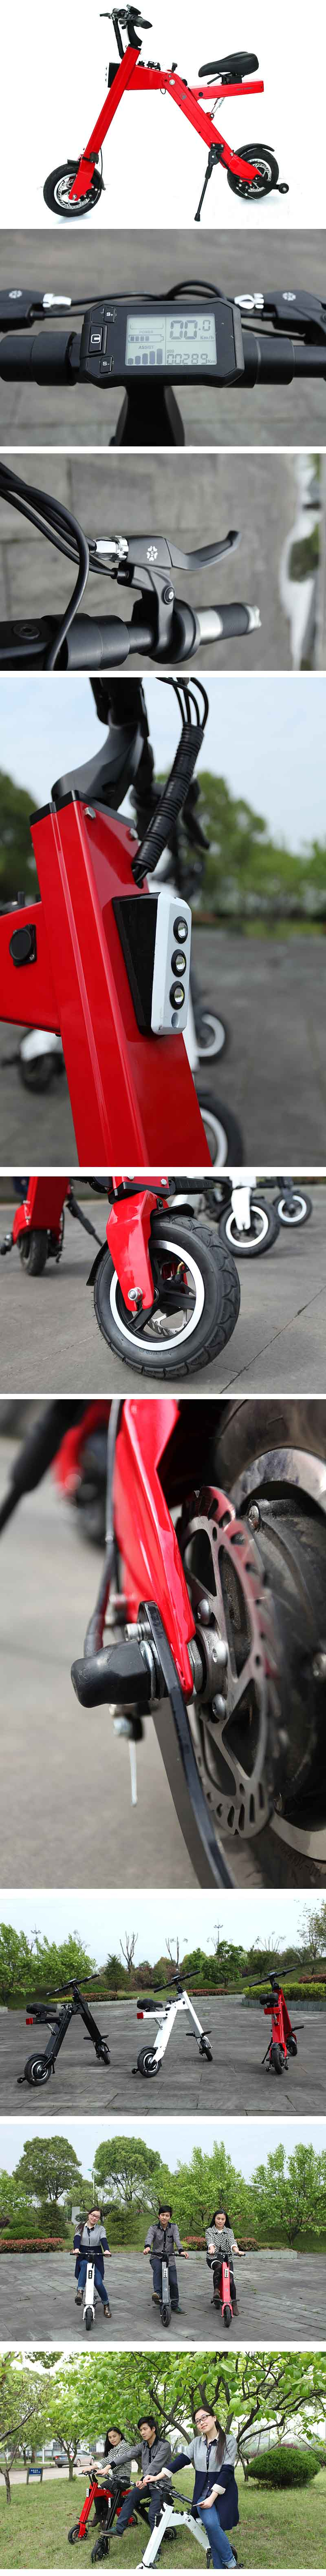 2wheel Foldable Electric Scooter with Ce Certificate